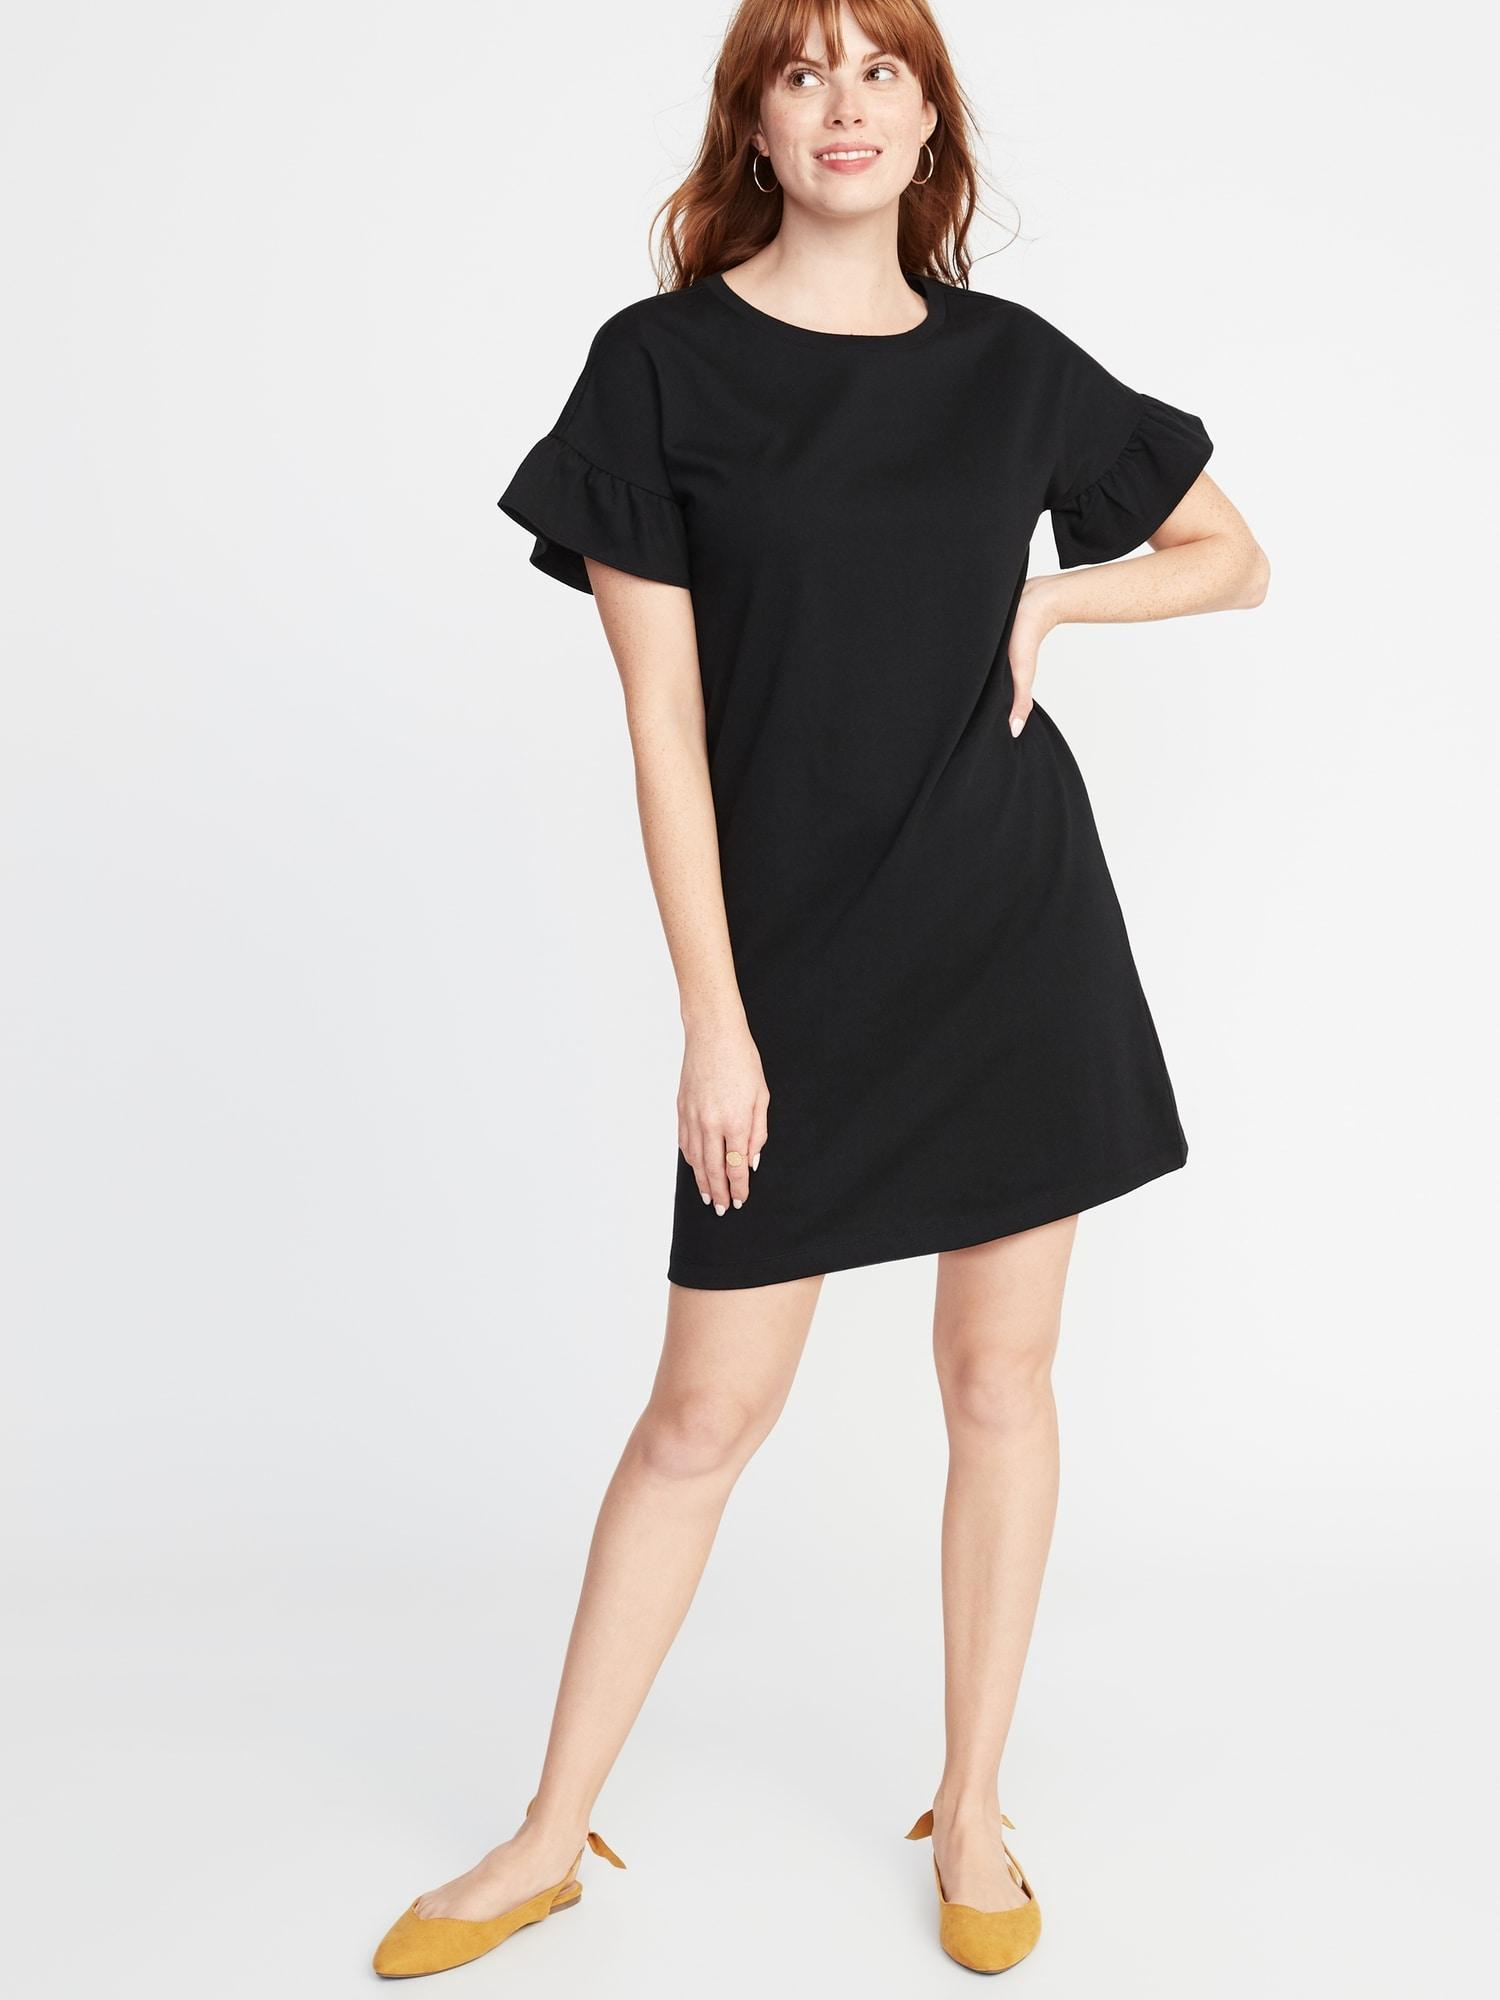 2c3040bb5461 Lyst - Old Navy Ruffle-sleeve Tee Dress in Black